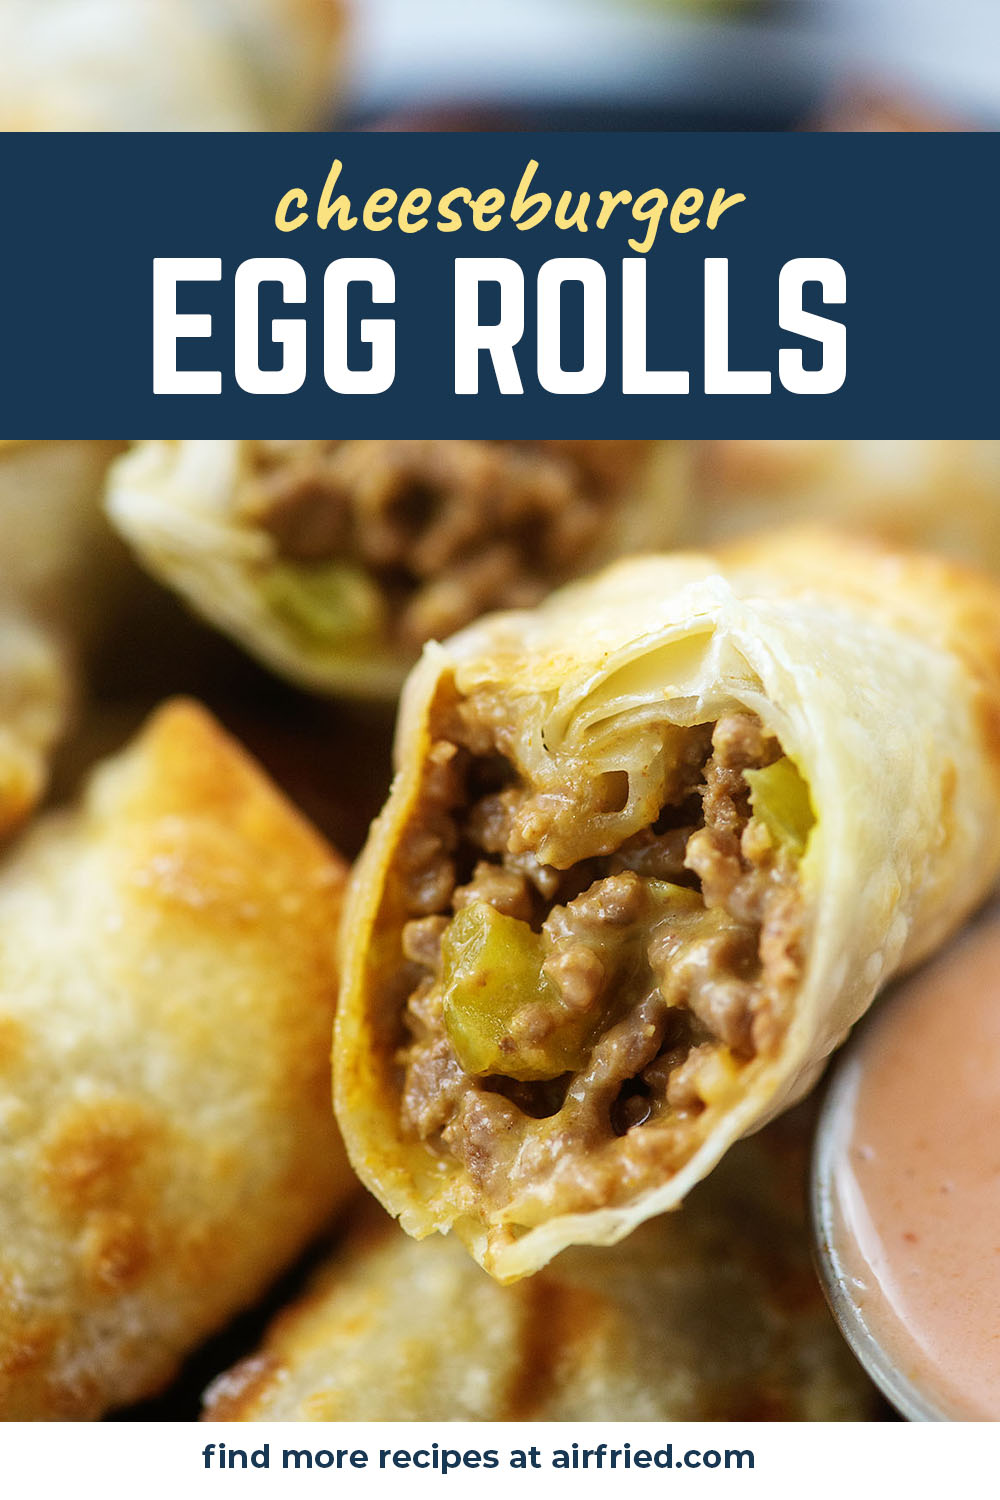 Egg rolls and cheeseburgers get fused together in the air fryer with this great recipe!